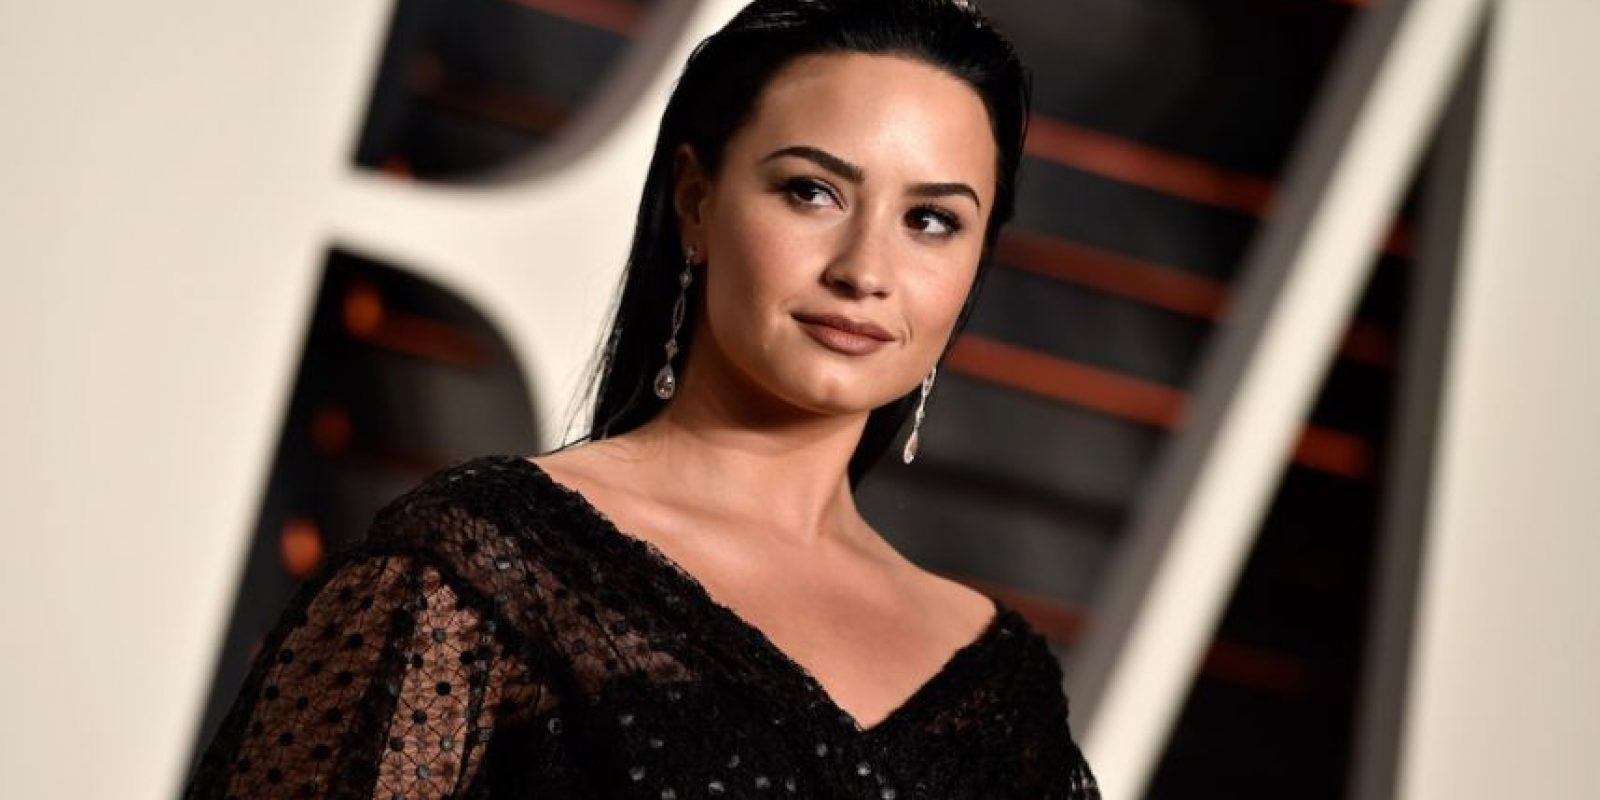 10. Demi Lovato Foto: Getty Images